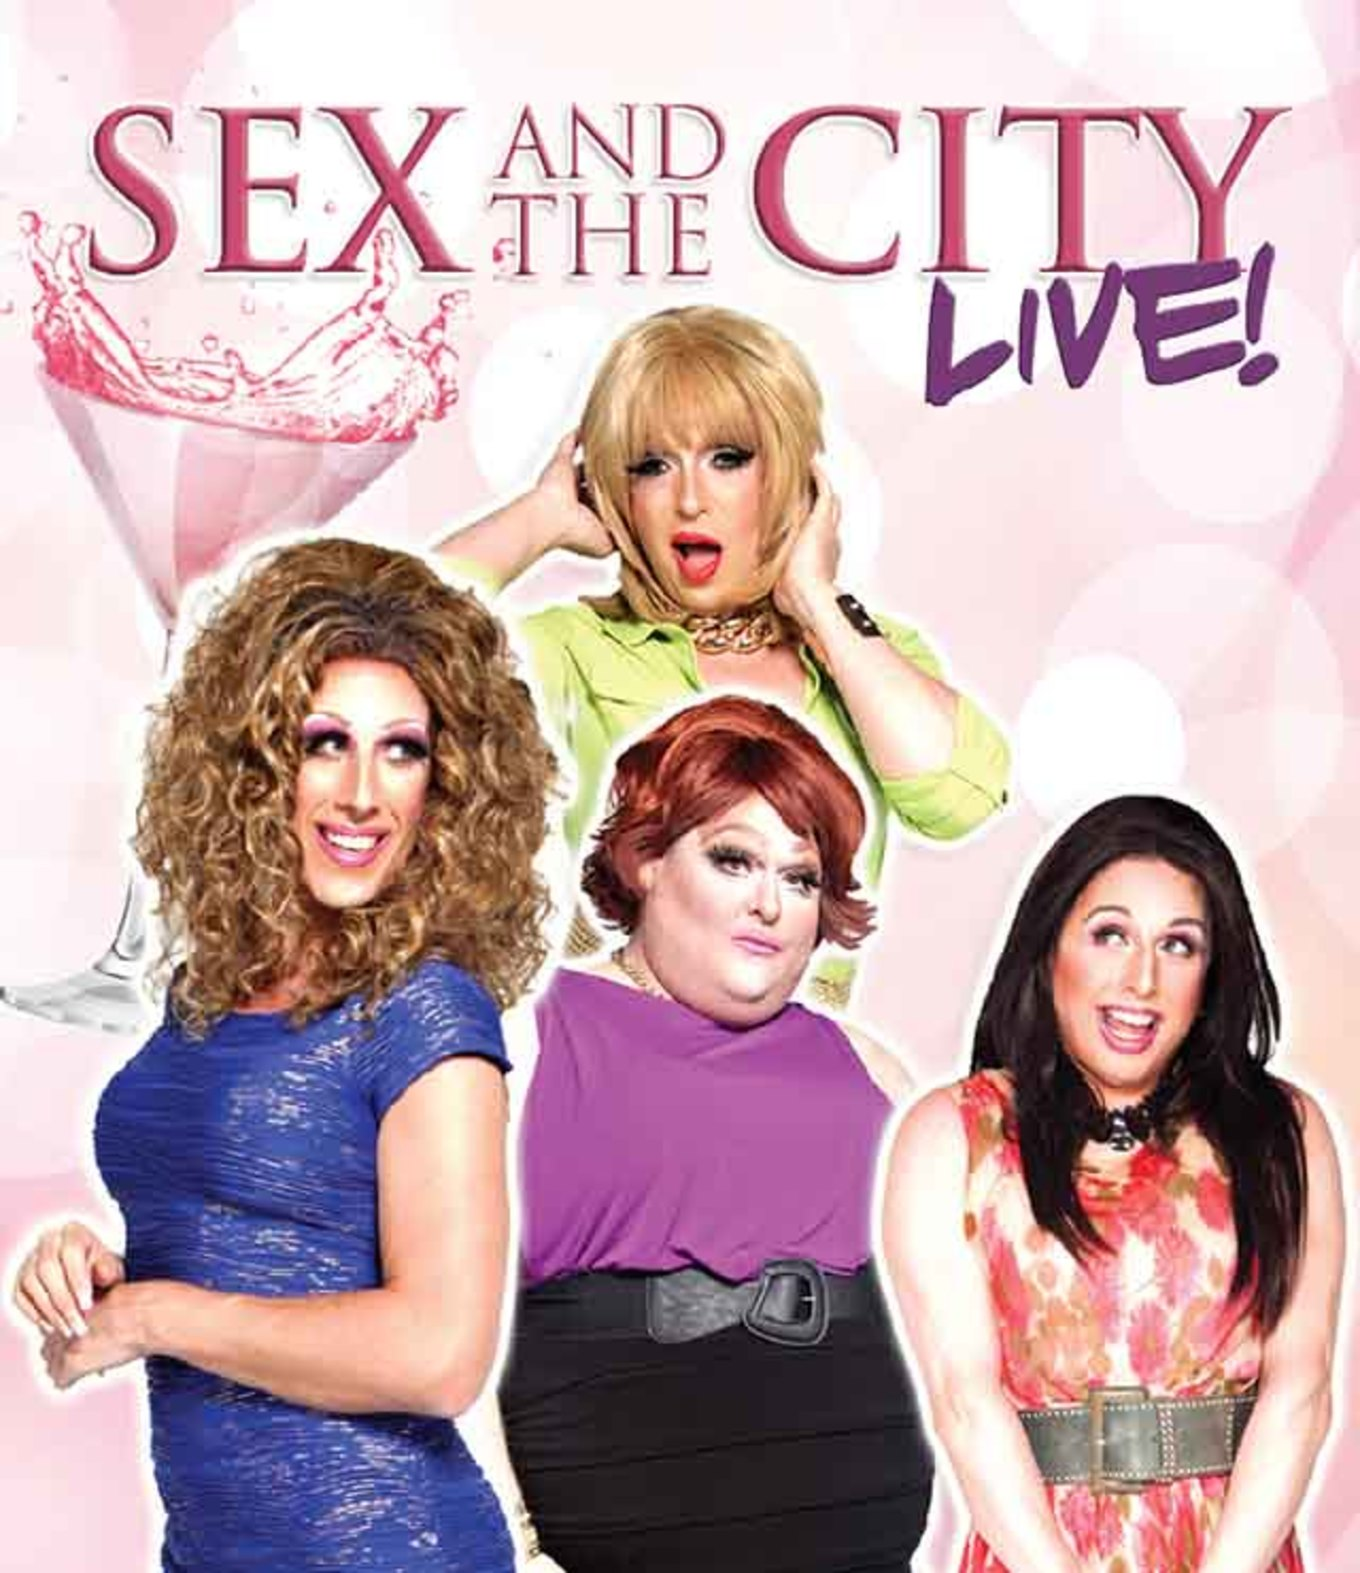 Sex and the city live